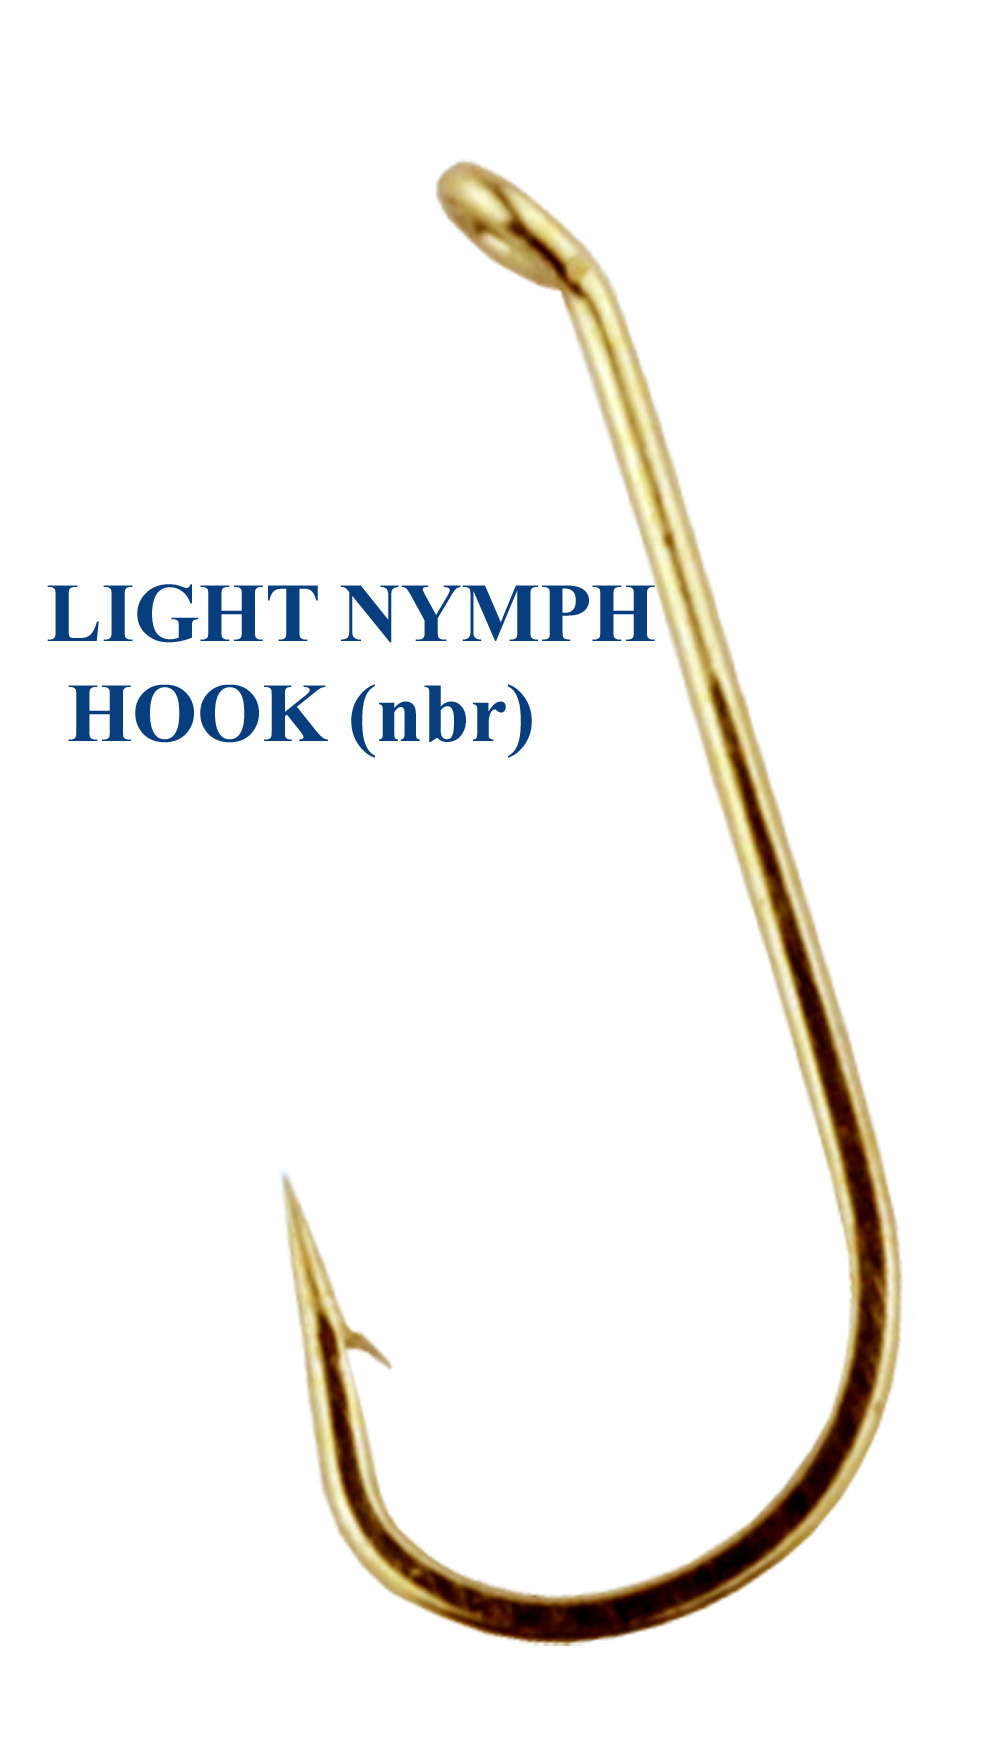 LIGHT NYMPH HOOK (nbr)